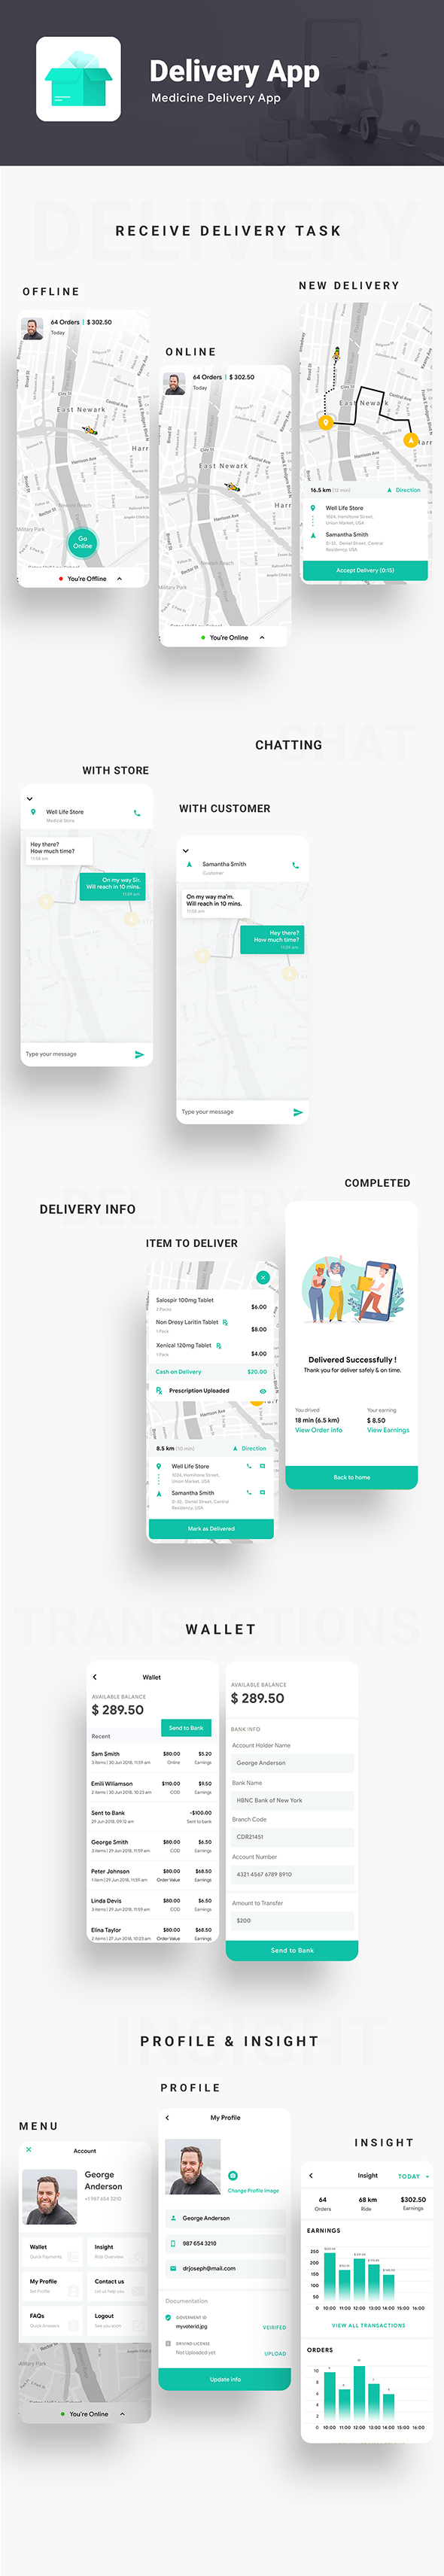 Nearby Doctor App| Online Medicine | Doctor Appointment Booking App |Android + iOS Template| FLUTTER - 9